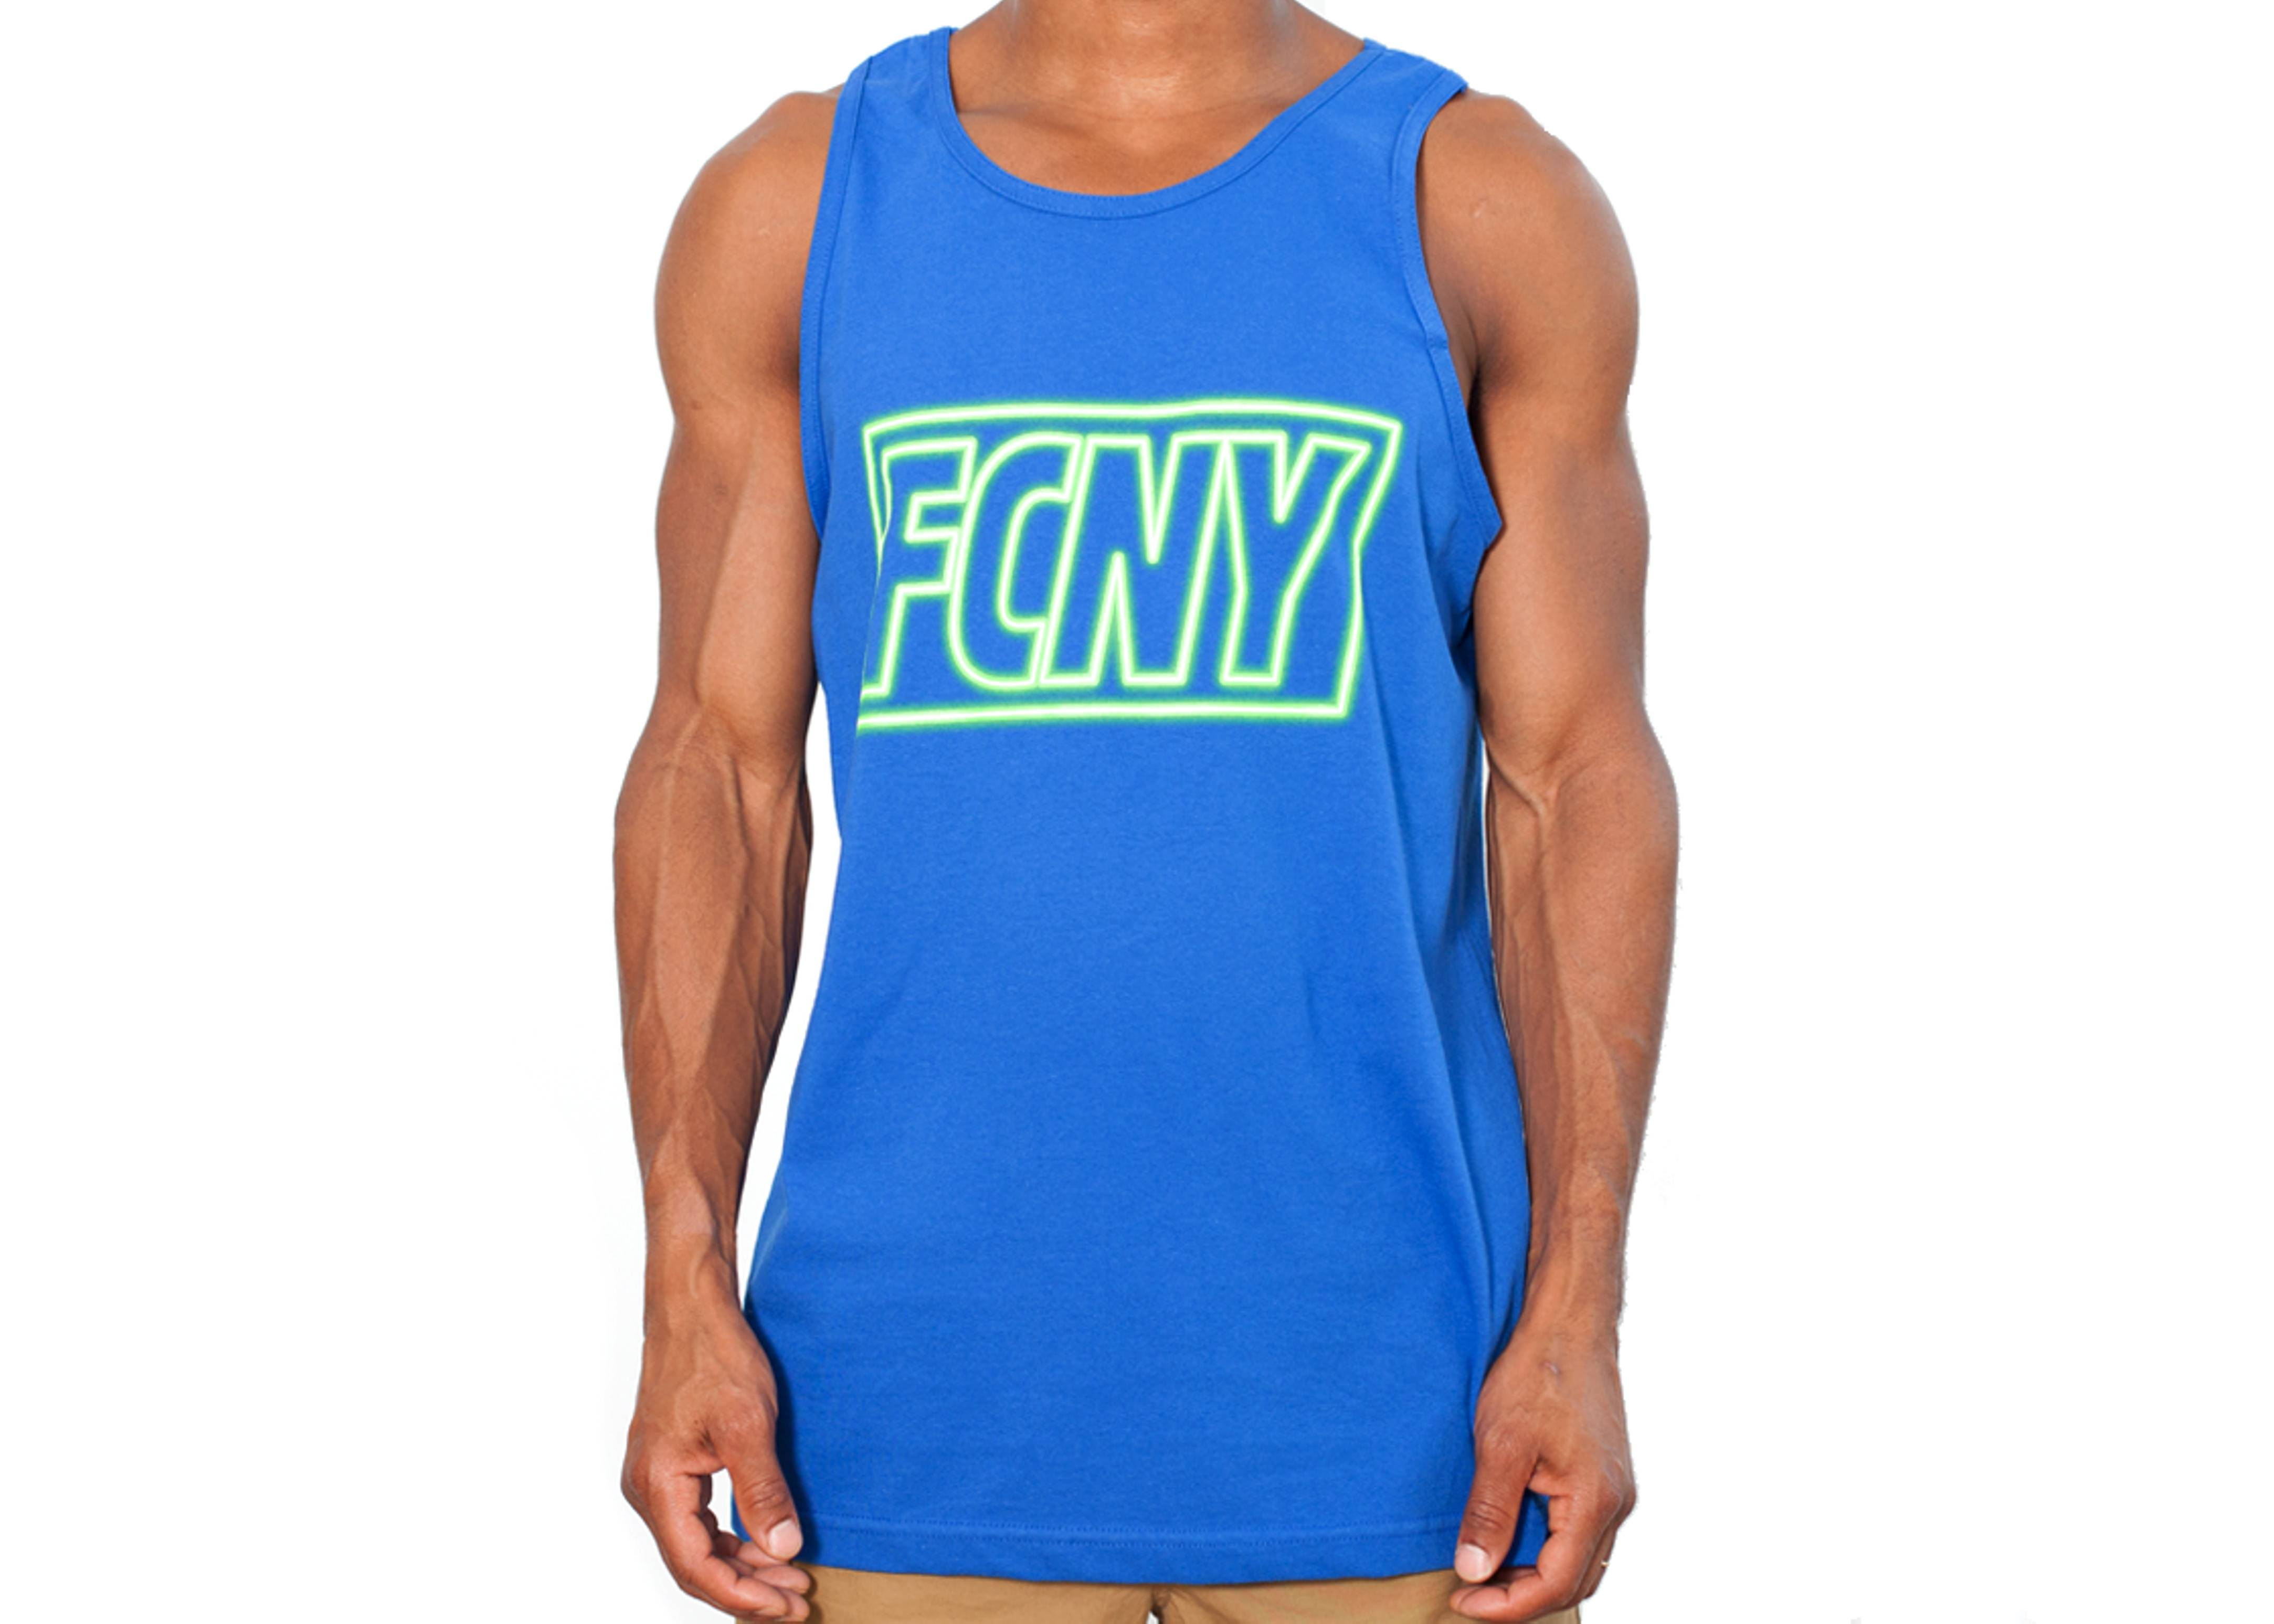 fcny neon tank top